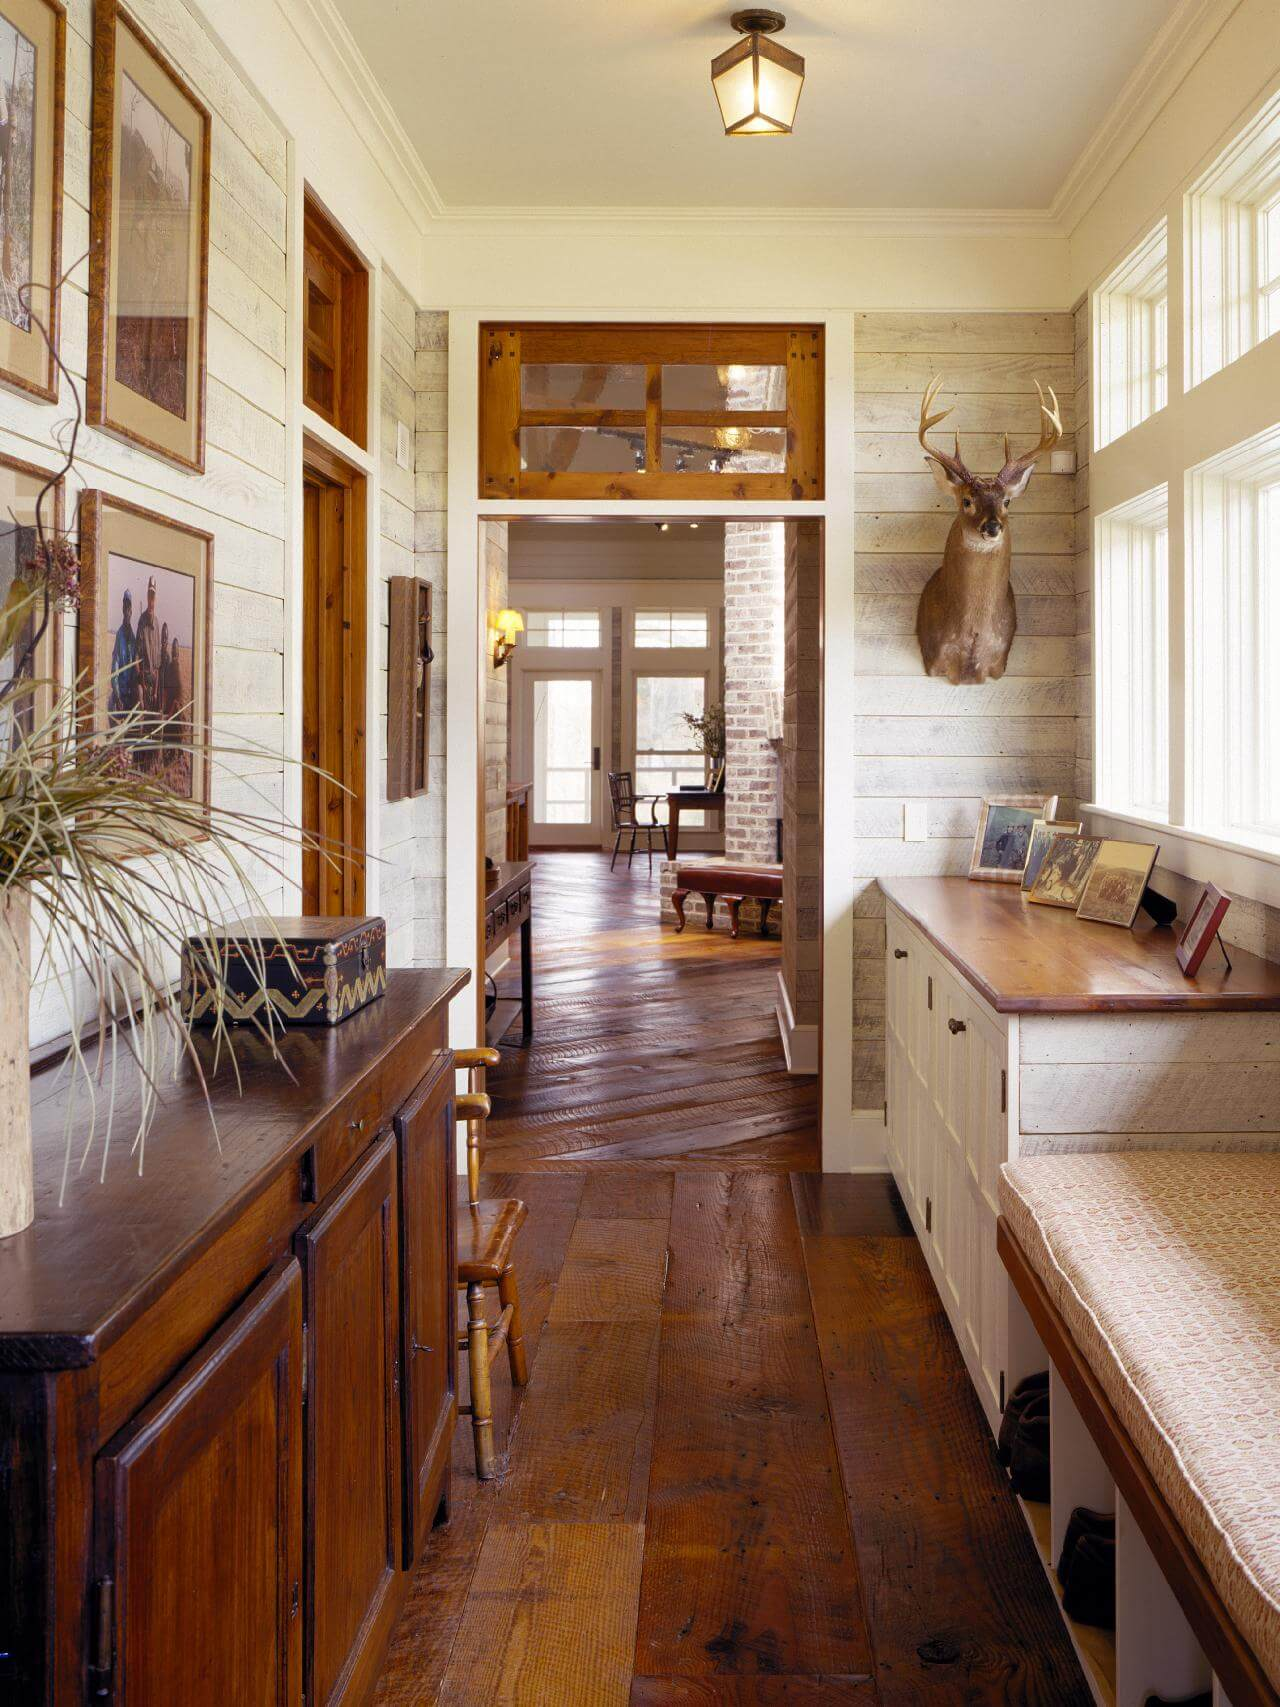 Foyer Mudroom Ideas : Superb mudroom entryway design ideas with benches